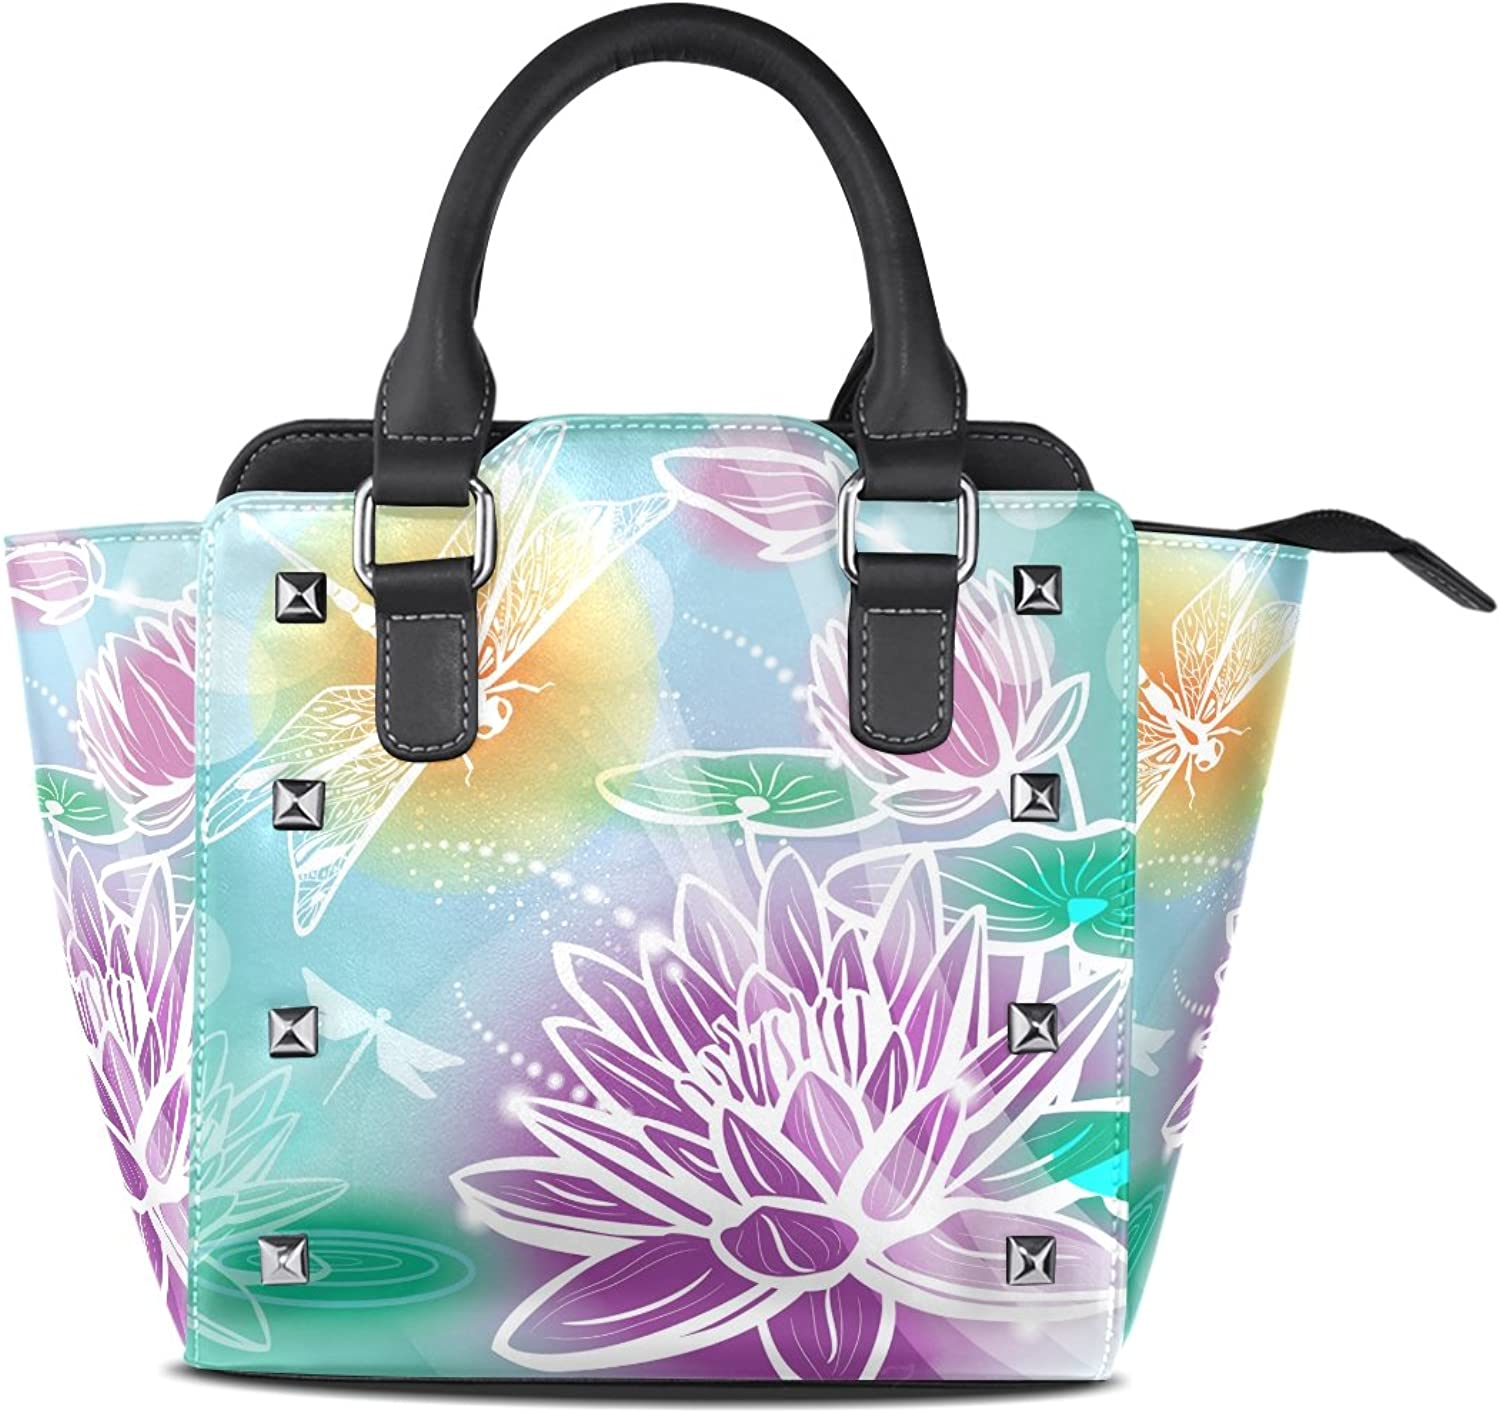 Sunlome Retro Dragonfly Floral Print Women's Leather Tote Shoulder Bags Handbags